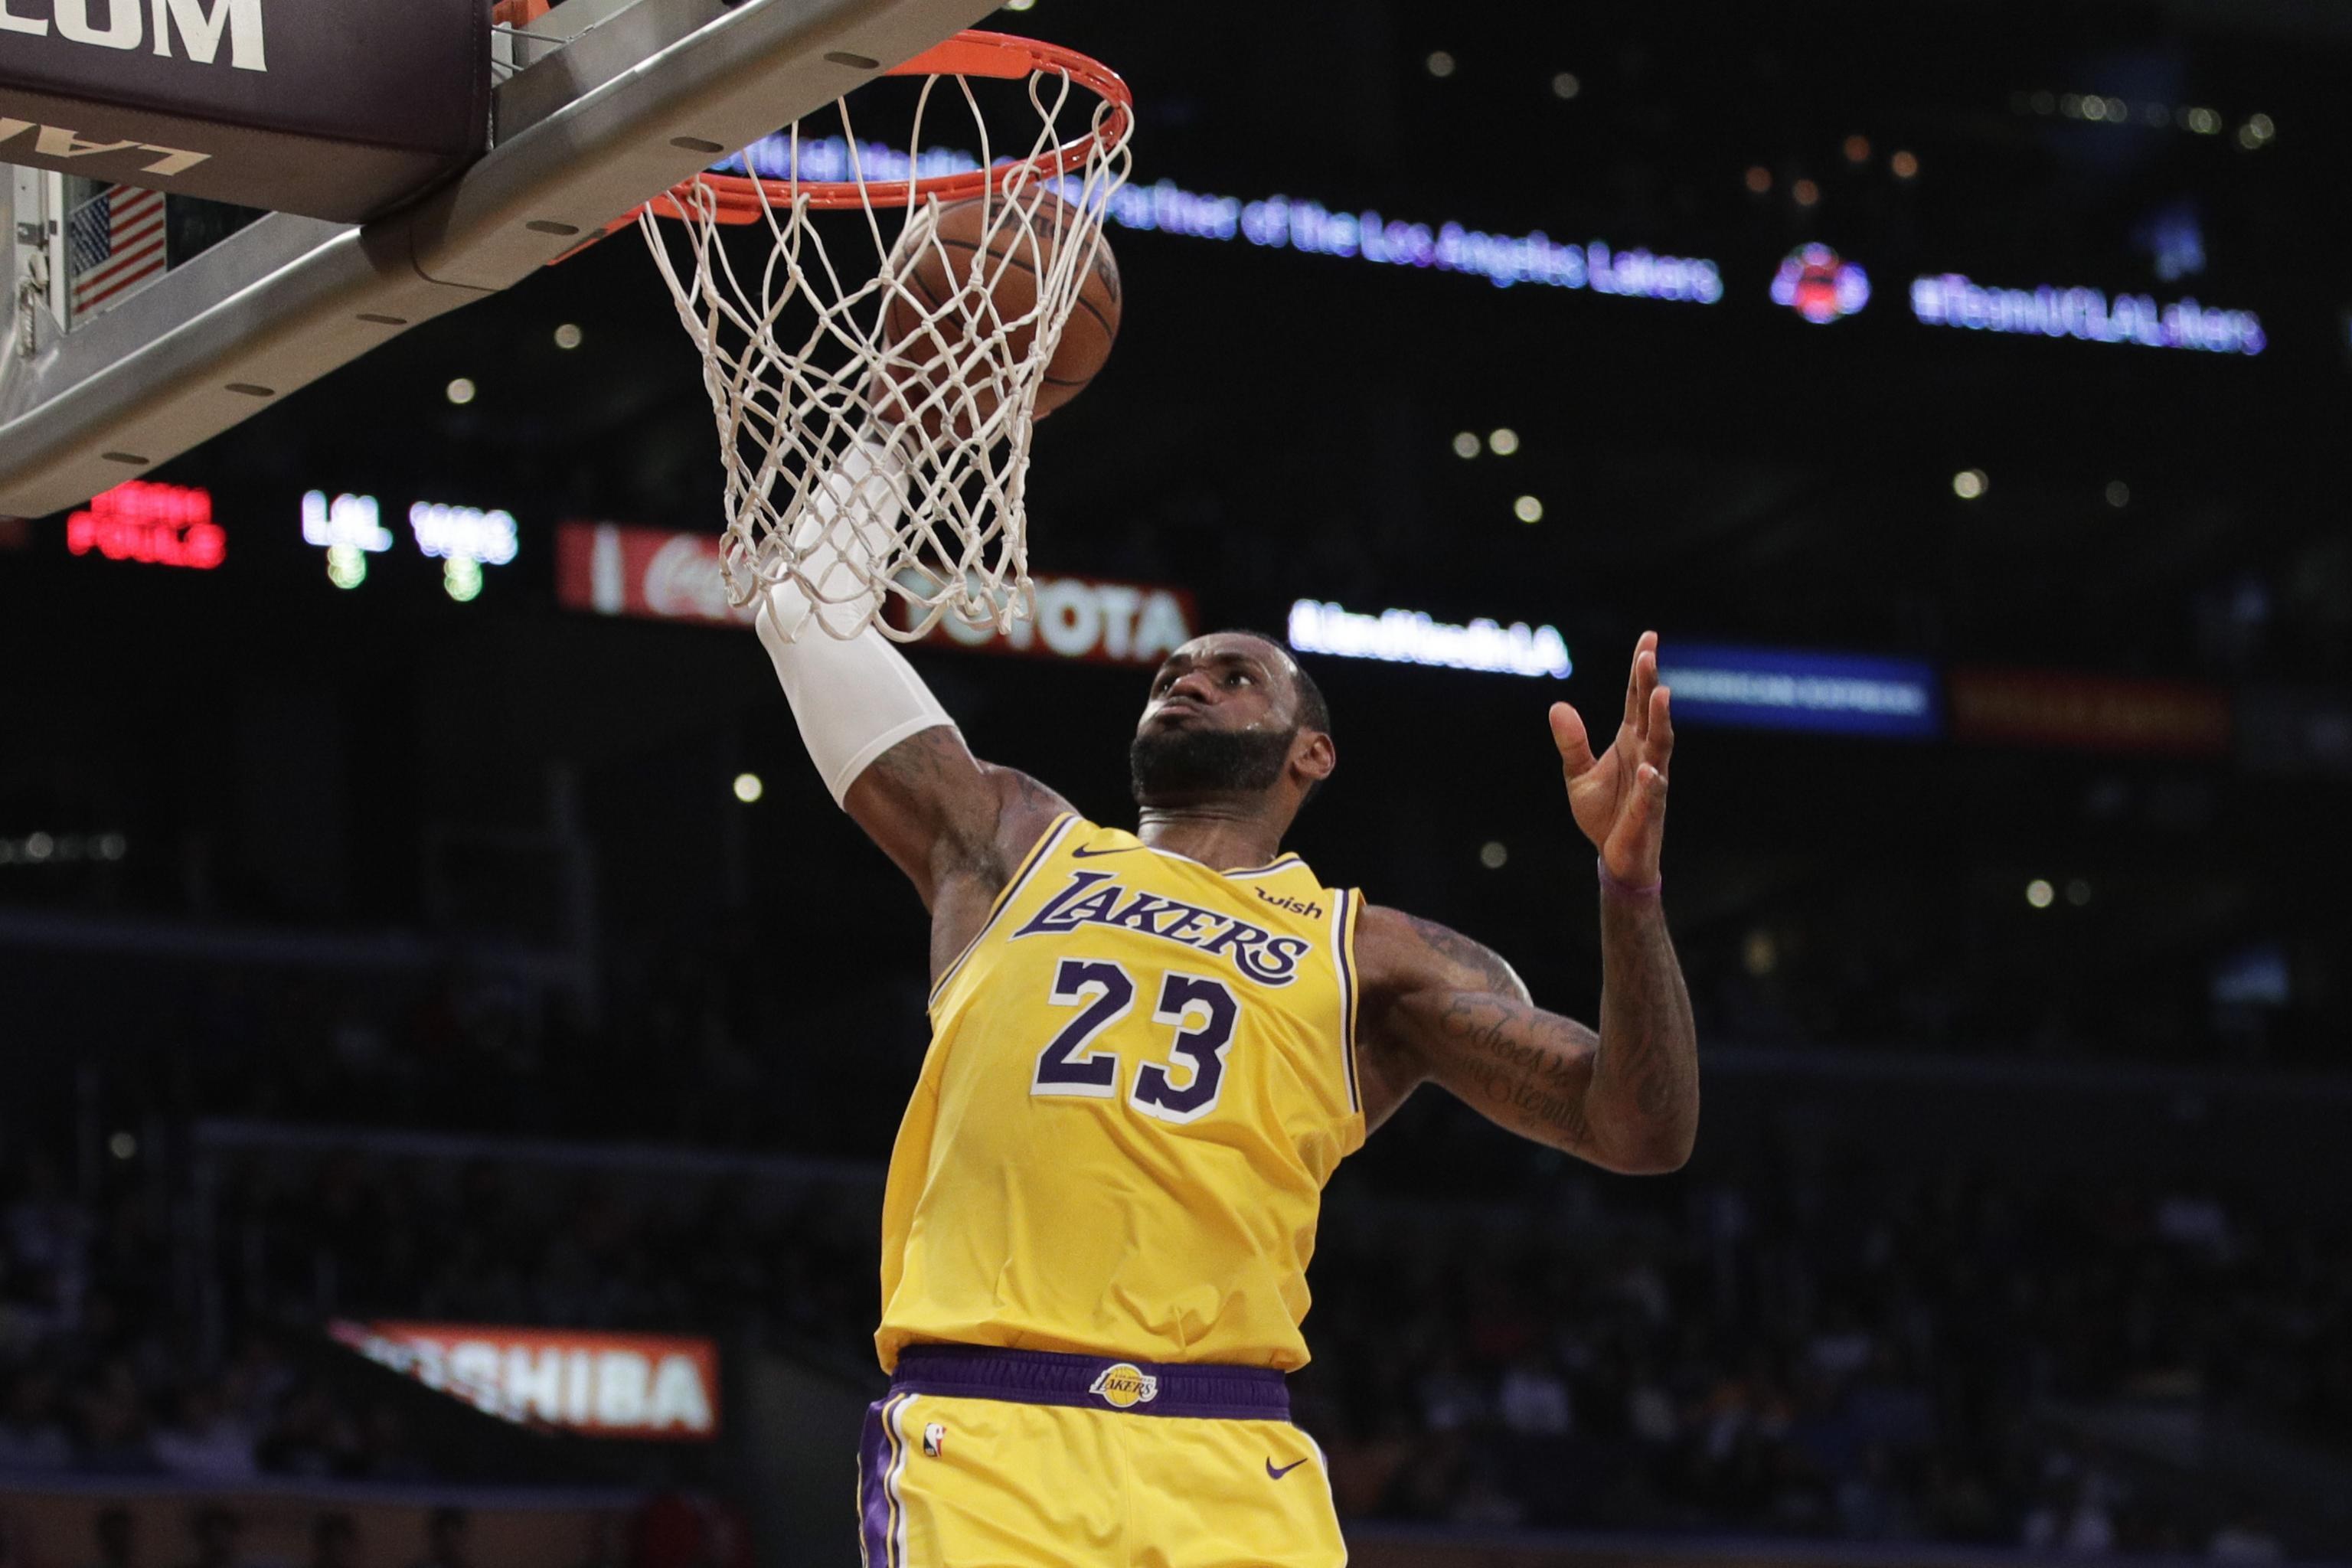 Nba Christmas.Lakers Vs Clippers Reportedly Headlines 2019 20 Nba